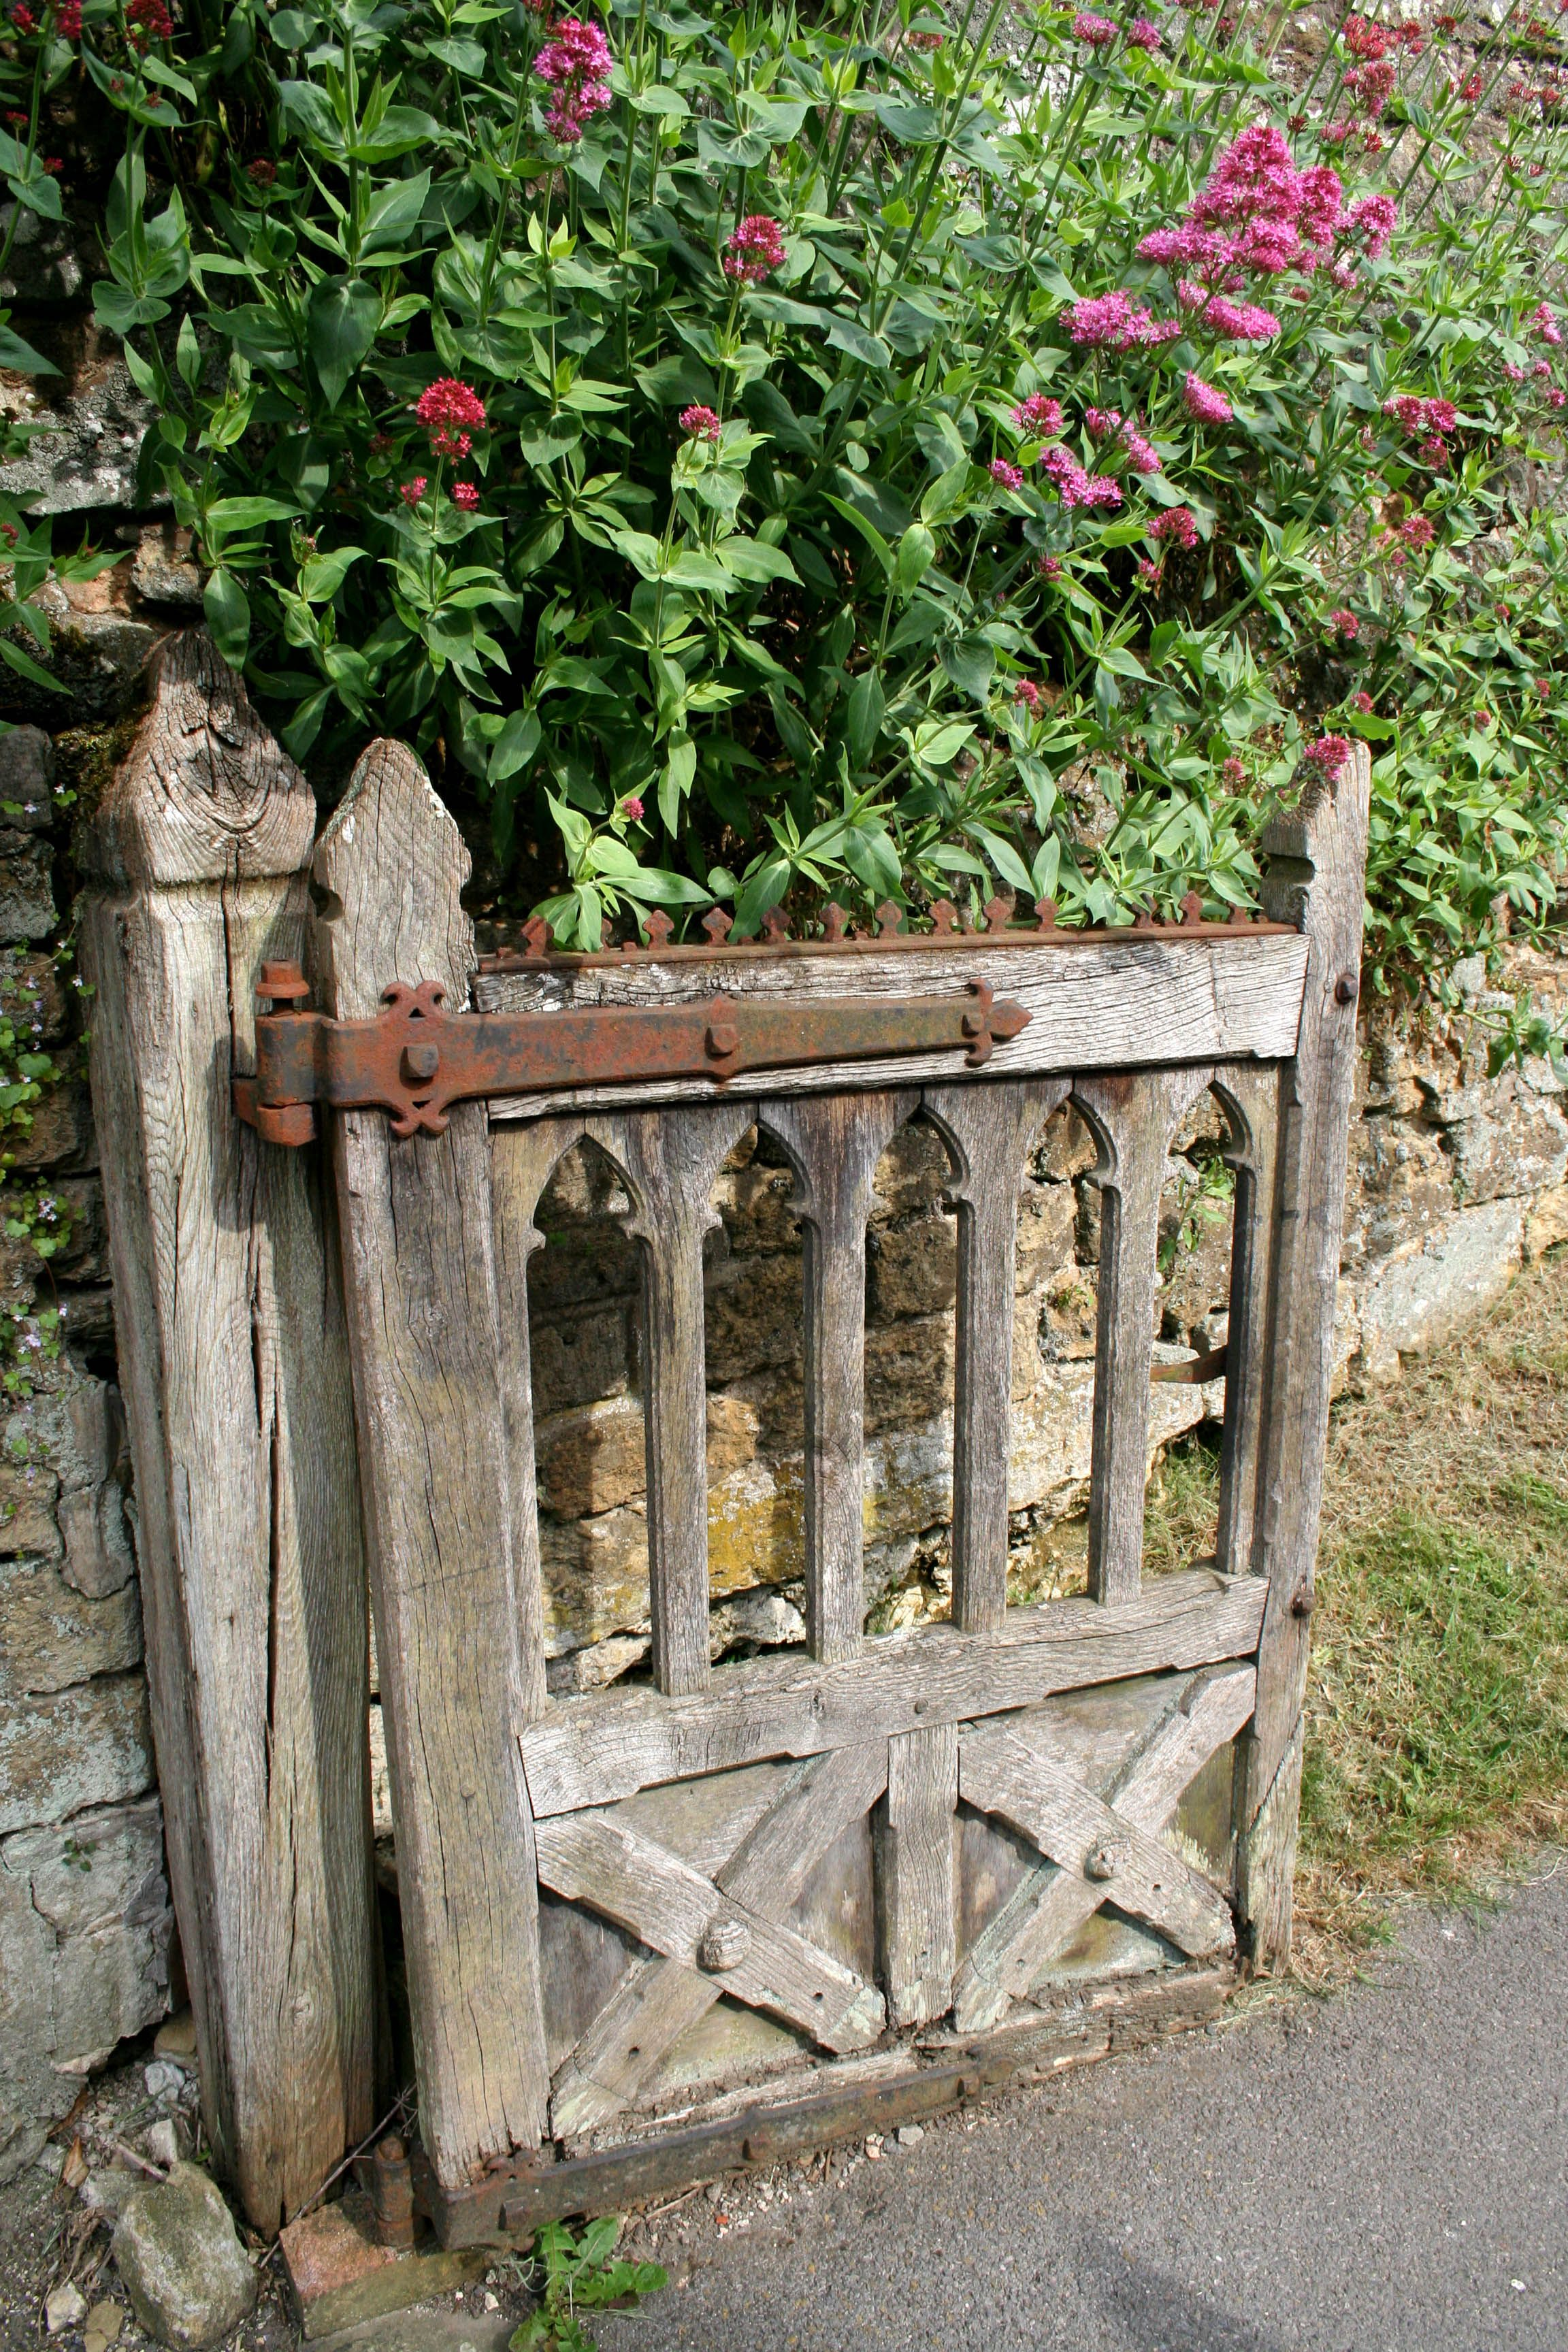 Old Rustic Weathered Garden Gate.